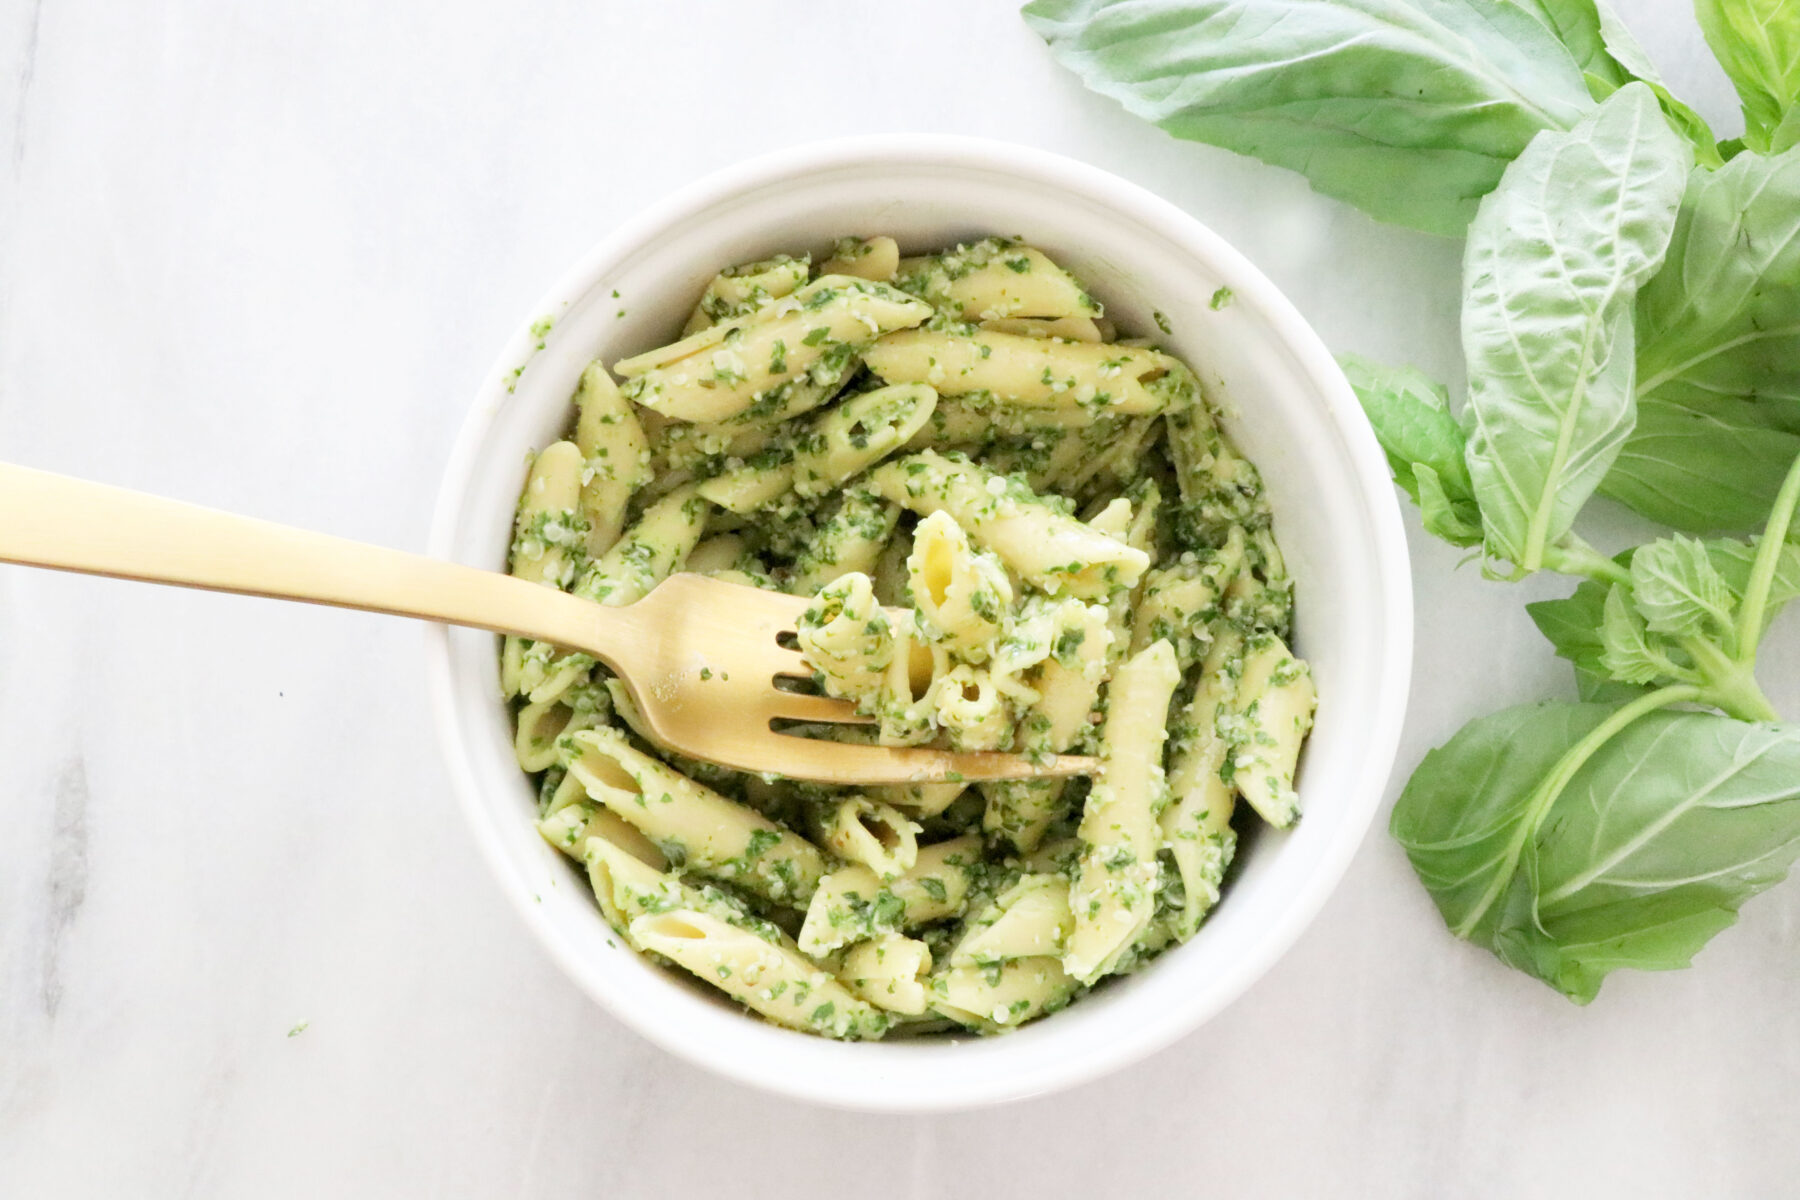 Bowl of Pasta Noodles Mixed with Dairy-Free Pesto with Fresh Basil